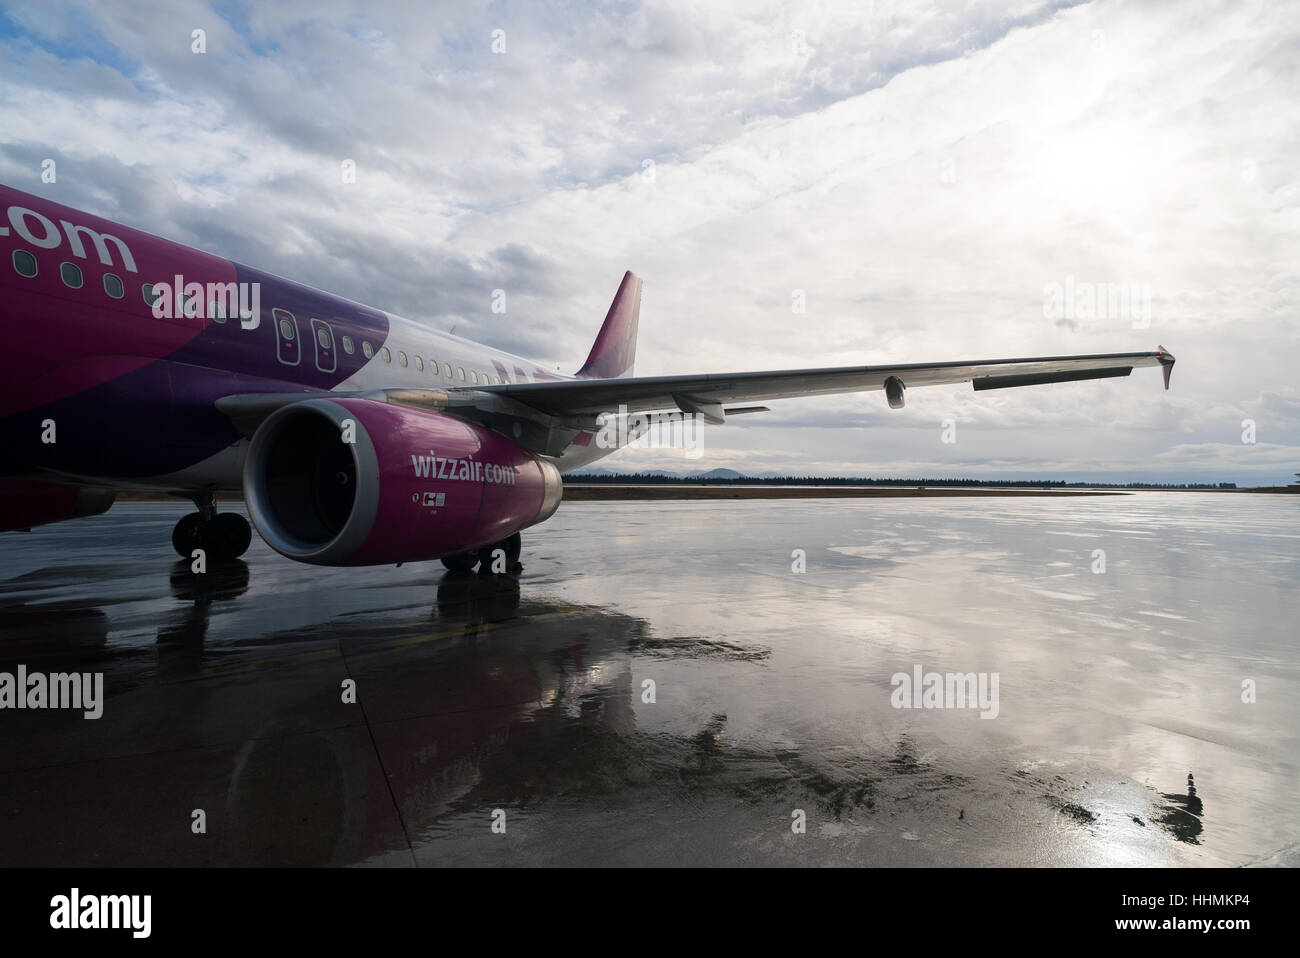 a Wizz Air Airbus A320 is ready for boarding on a cold wet day in Podgorica, Montenegro - Stock Image